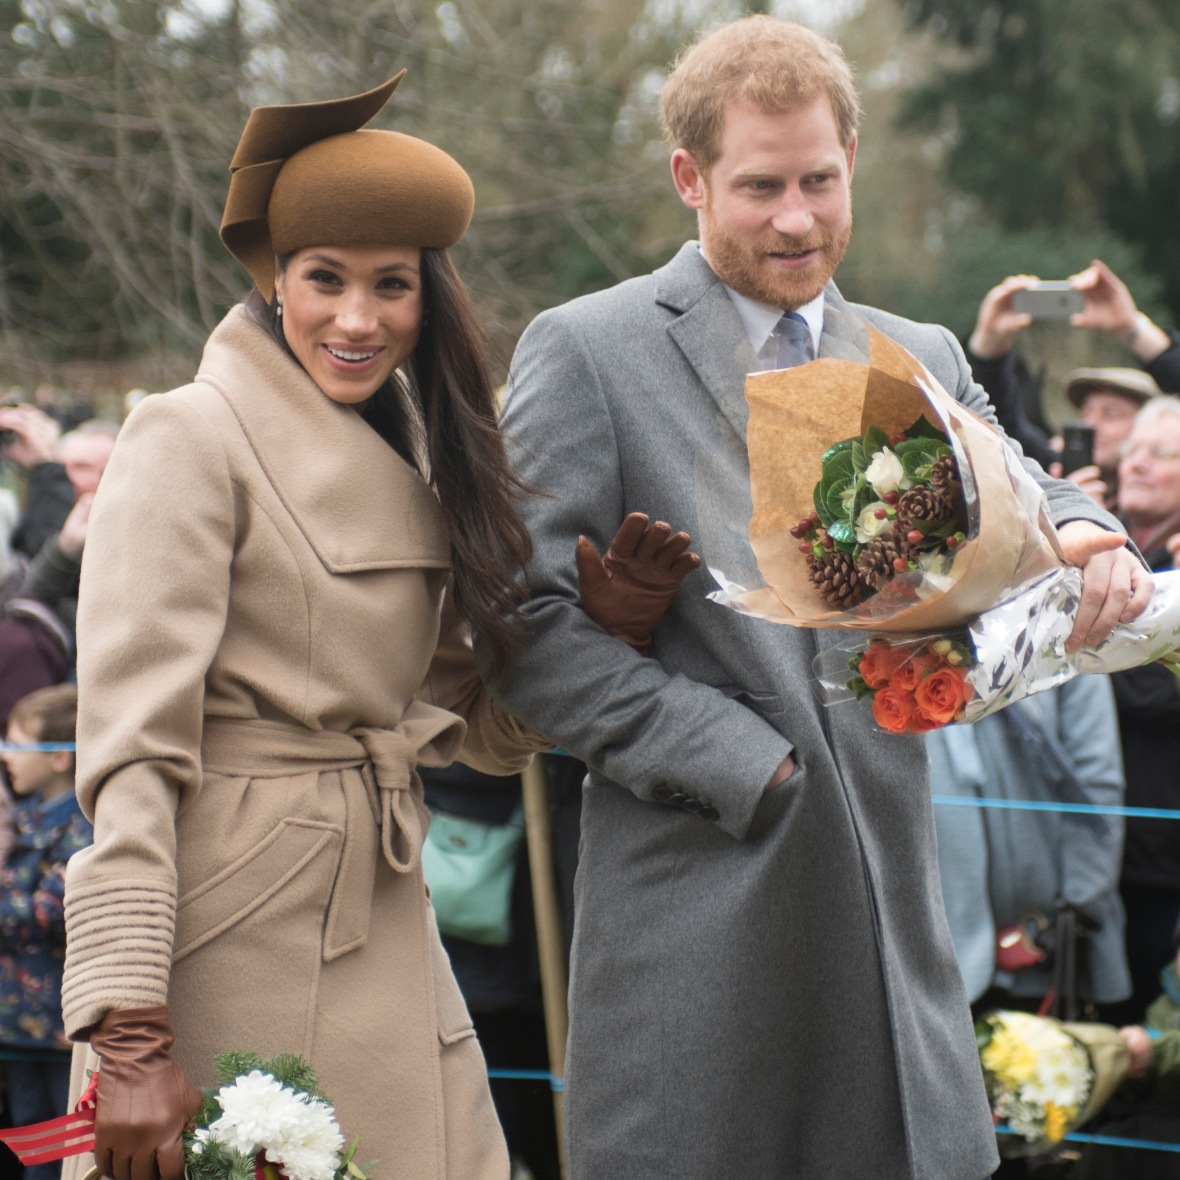 Meghan Markle's Mom Walking Her Down The Aisle In Wedding